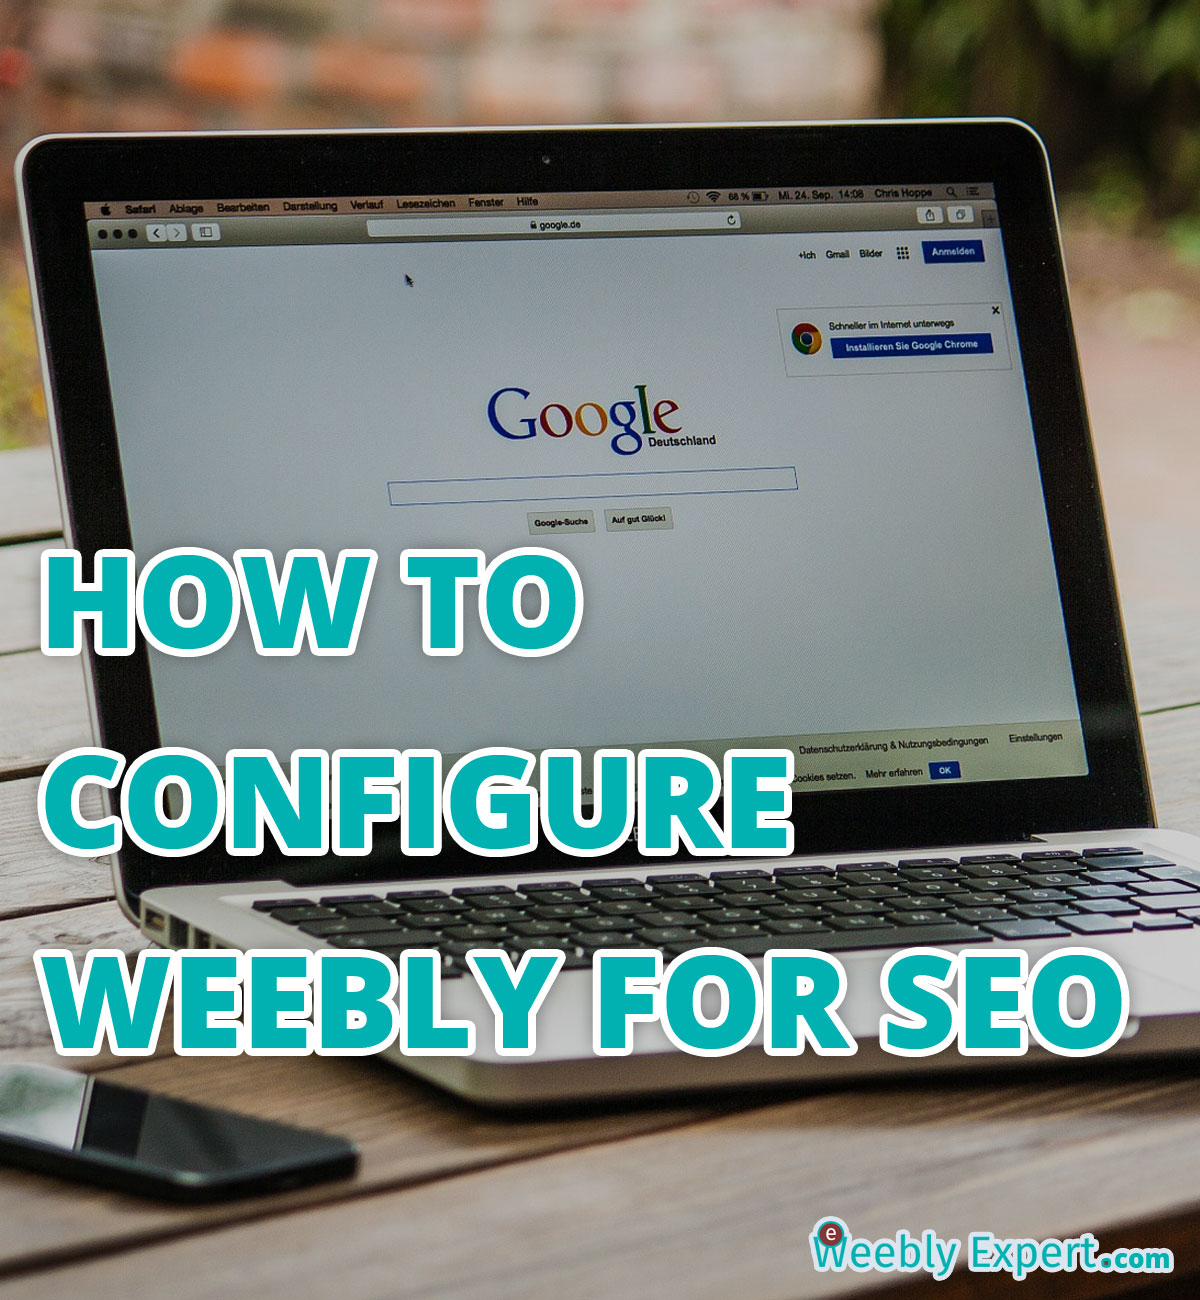 how to configure weebly for seo